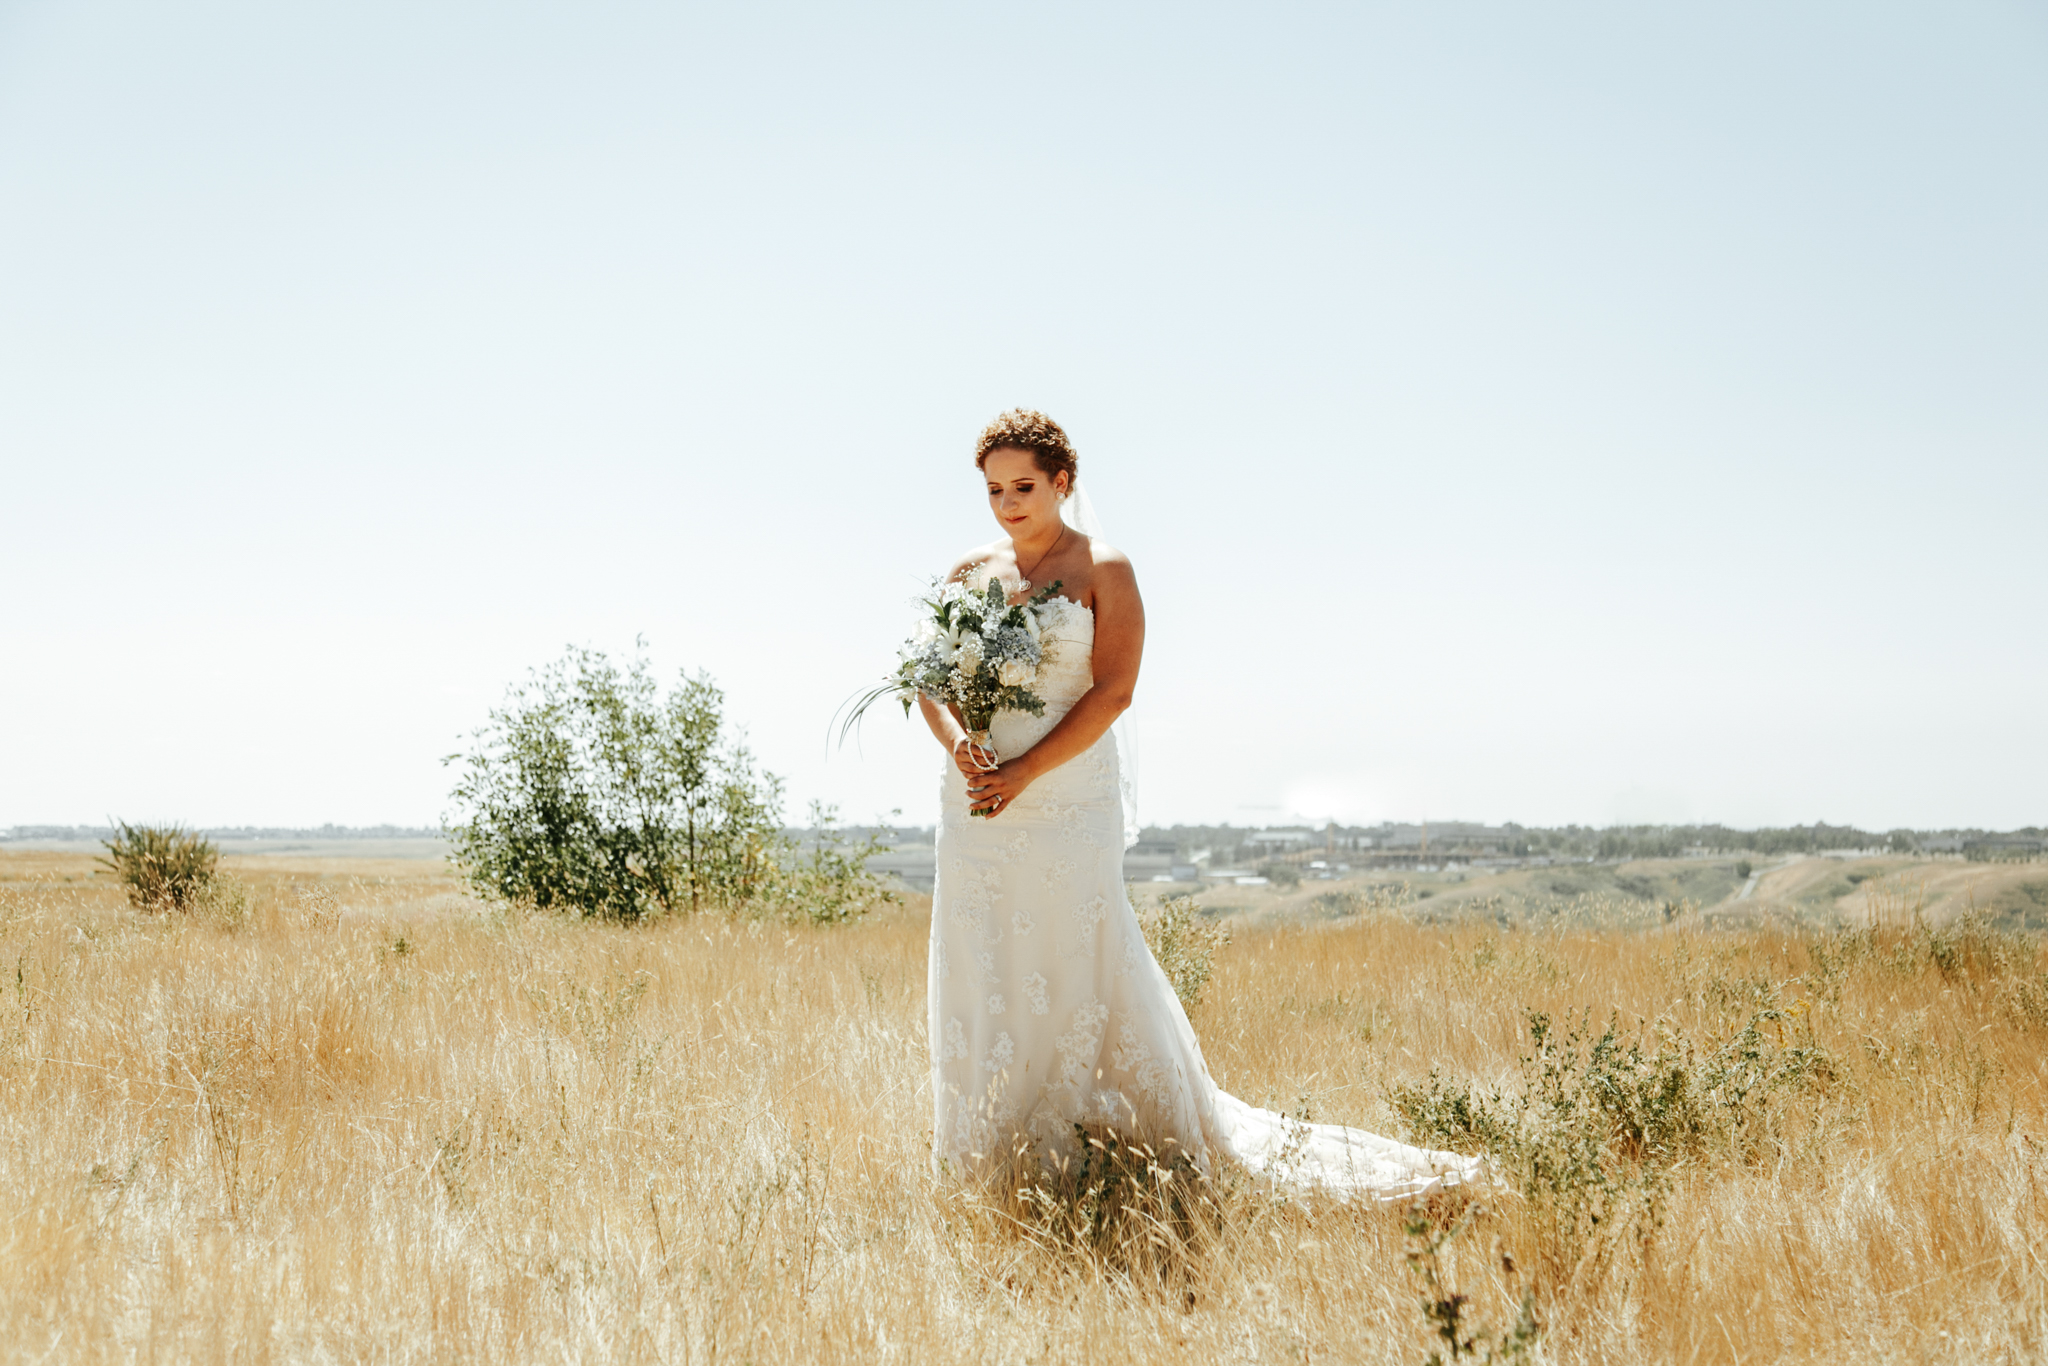 lethbridge-wedding-photographer-love-and-be-loved-photography-trent-danielle-galt-reception-picture-image-photo-87.jpg